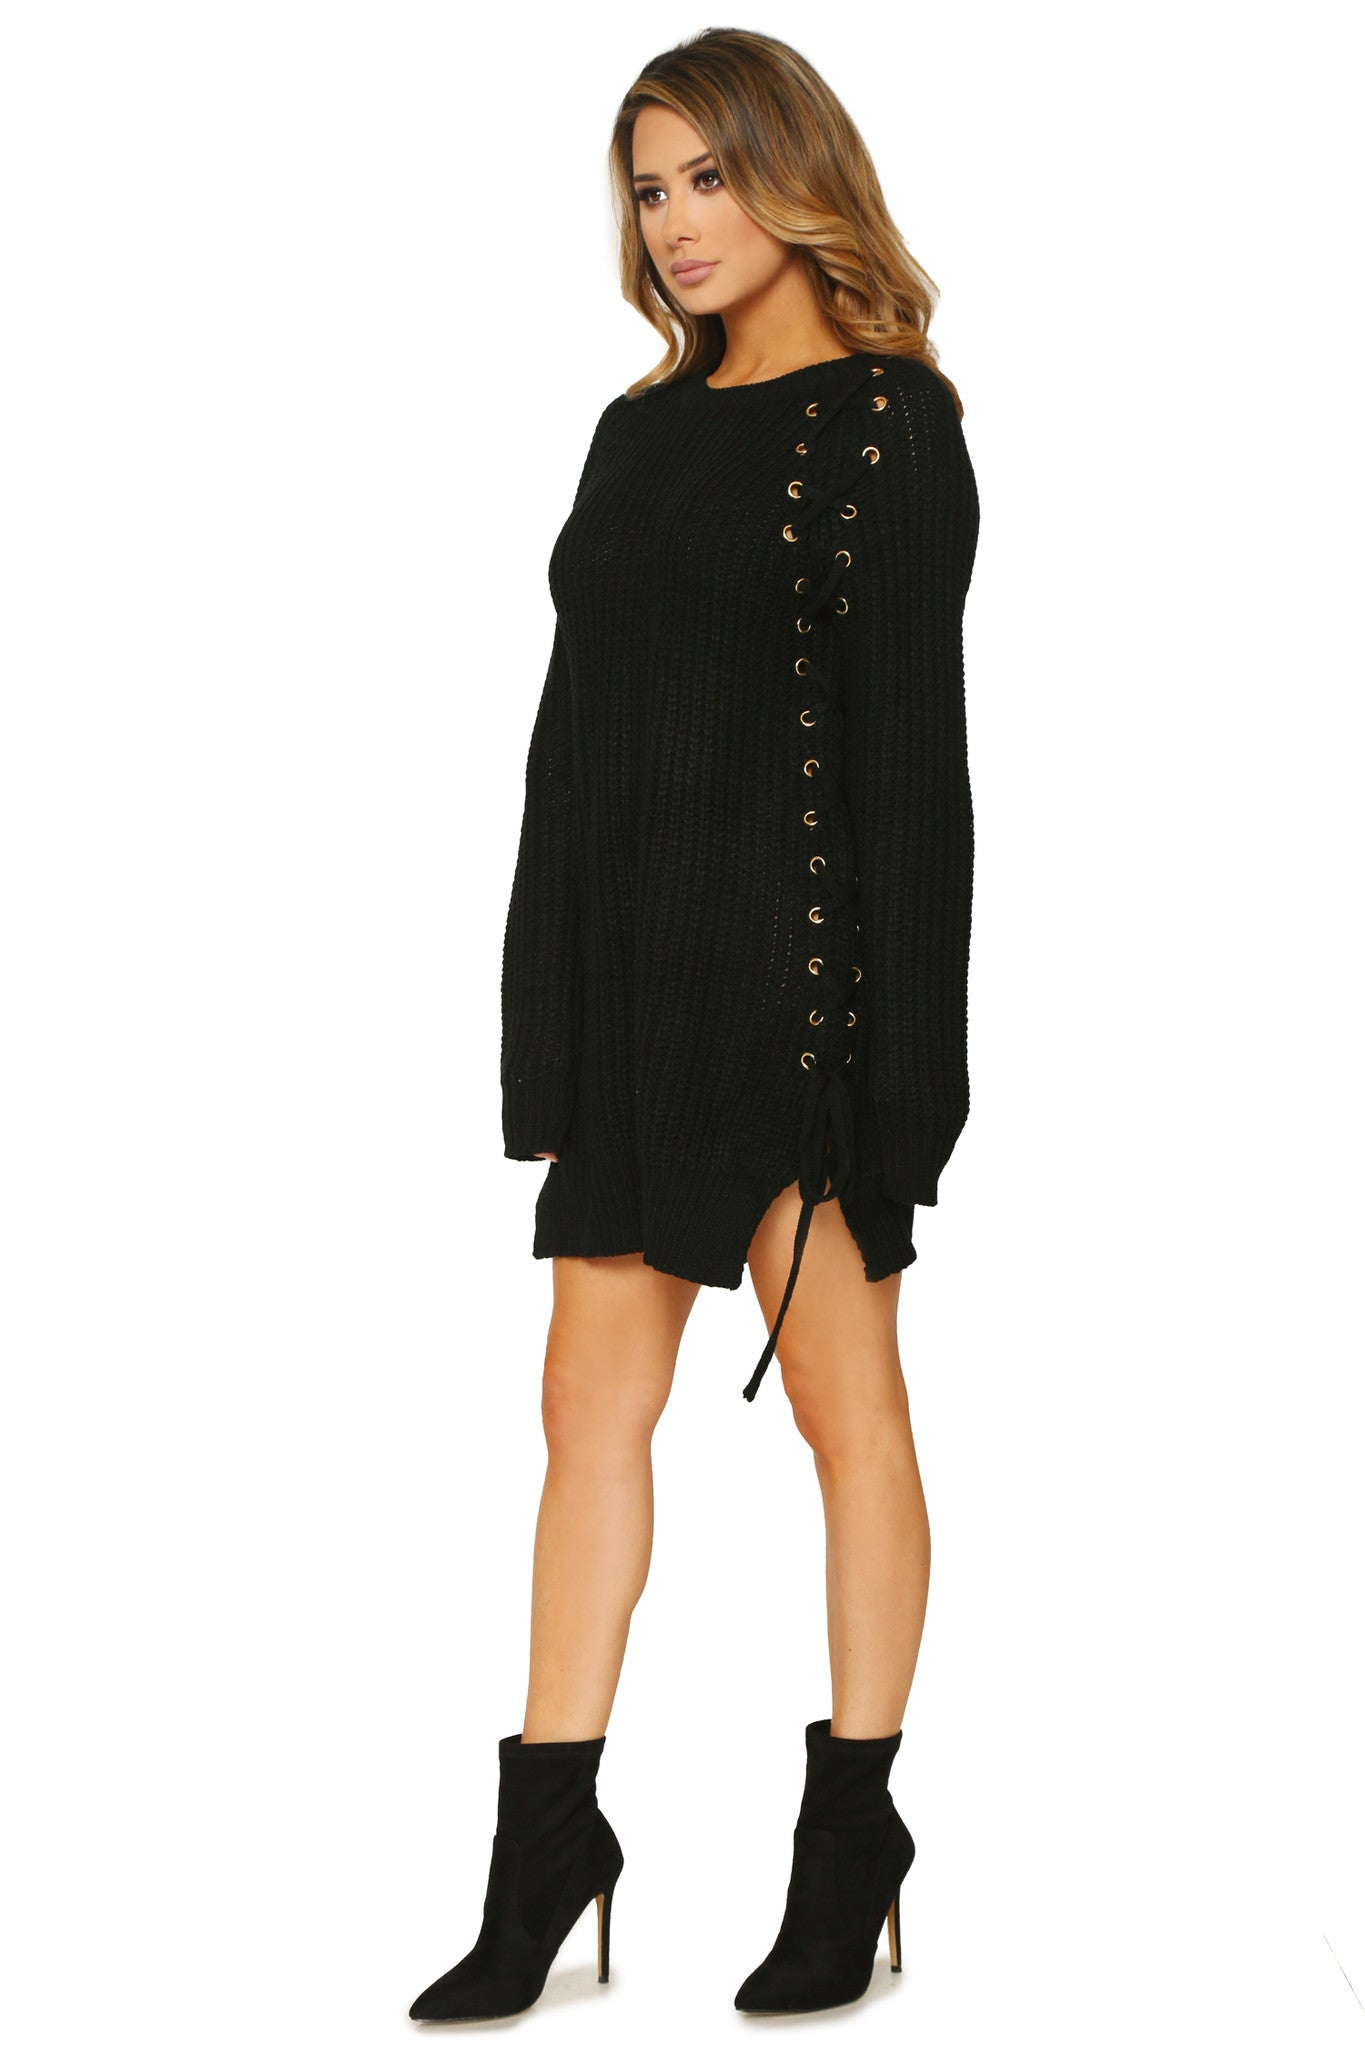 TAMIA SWEATER DRESS - Glam Envy - 2